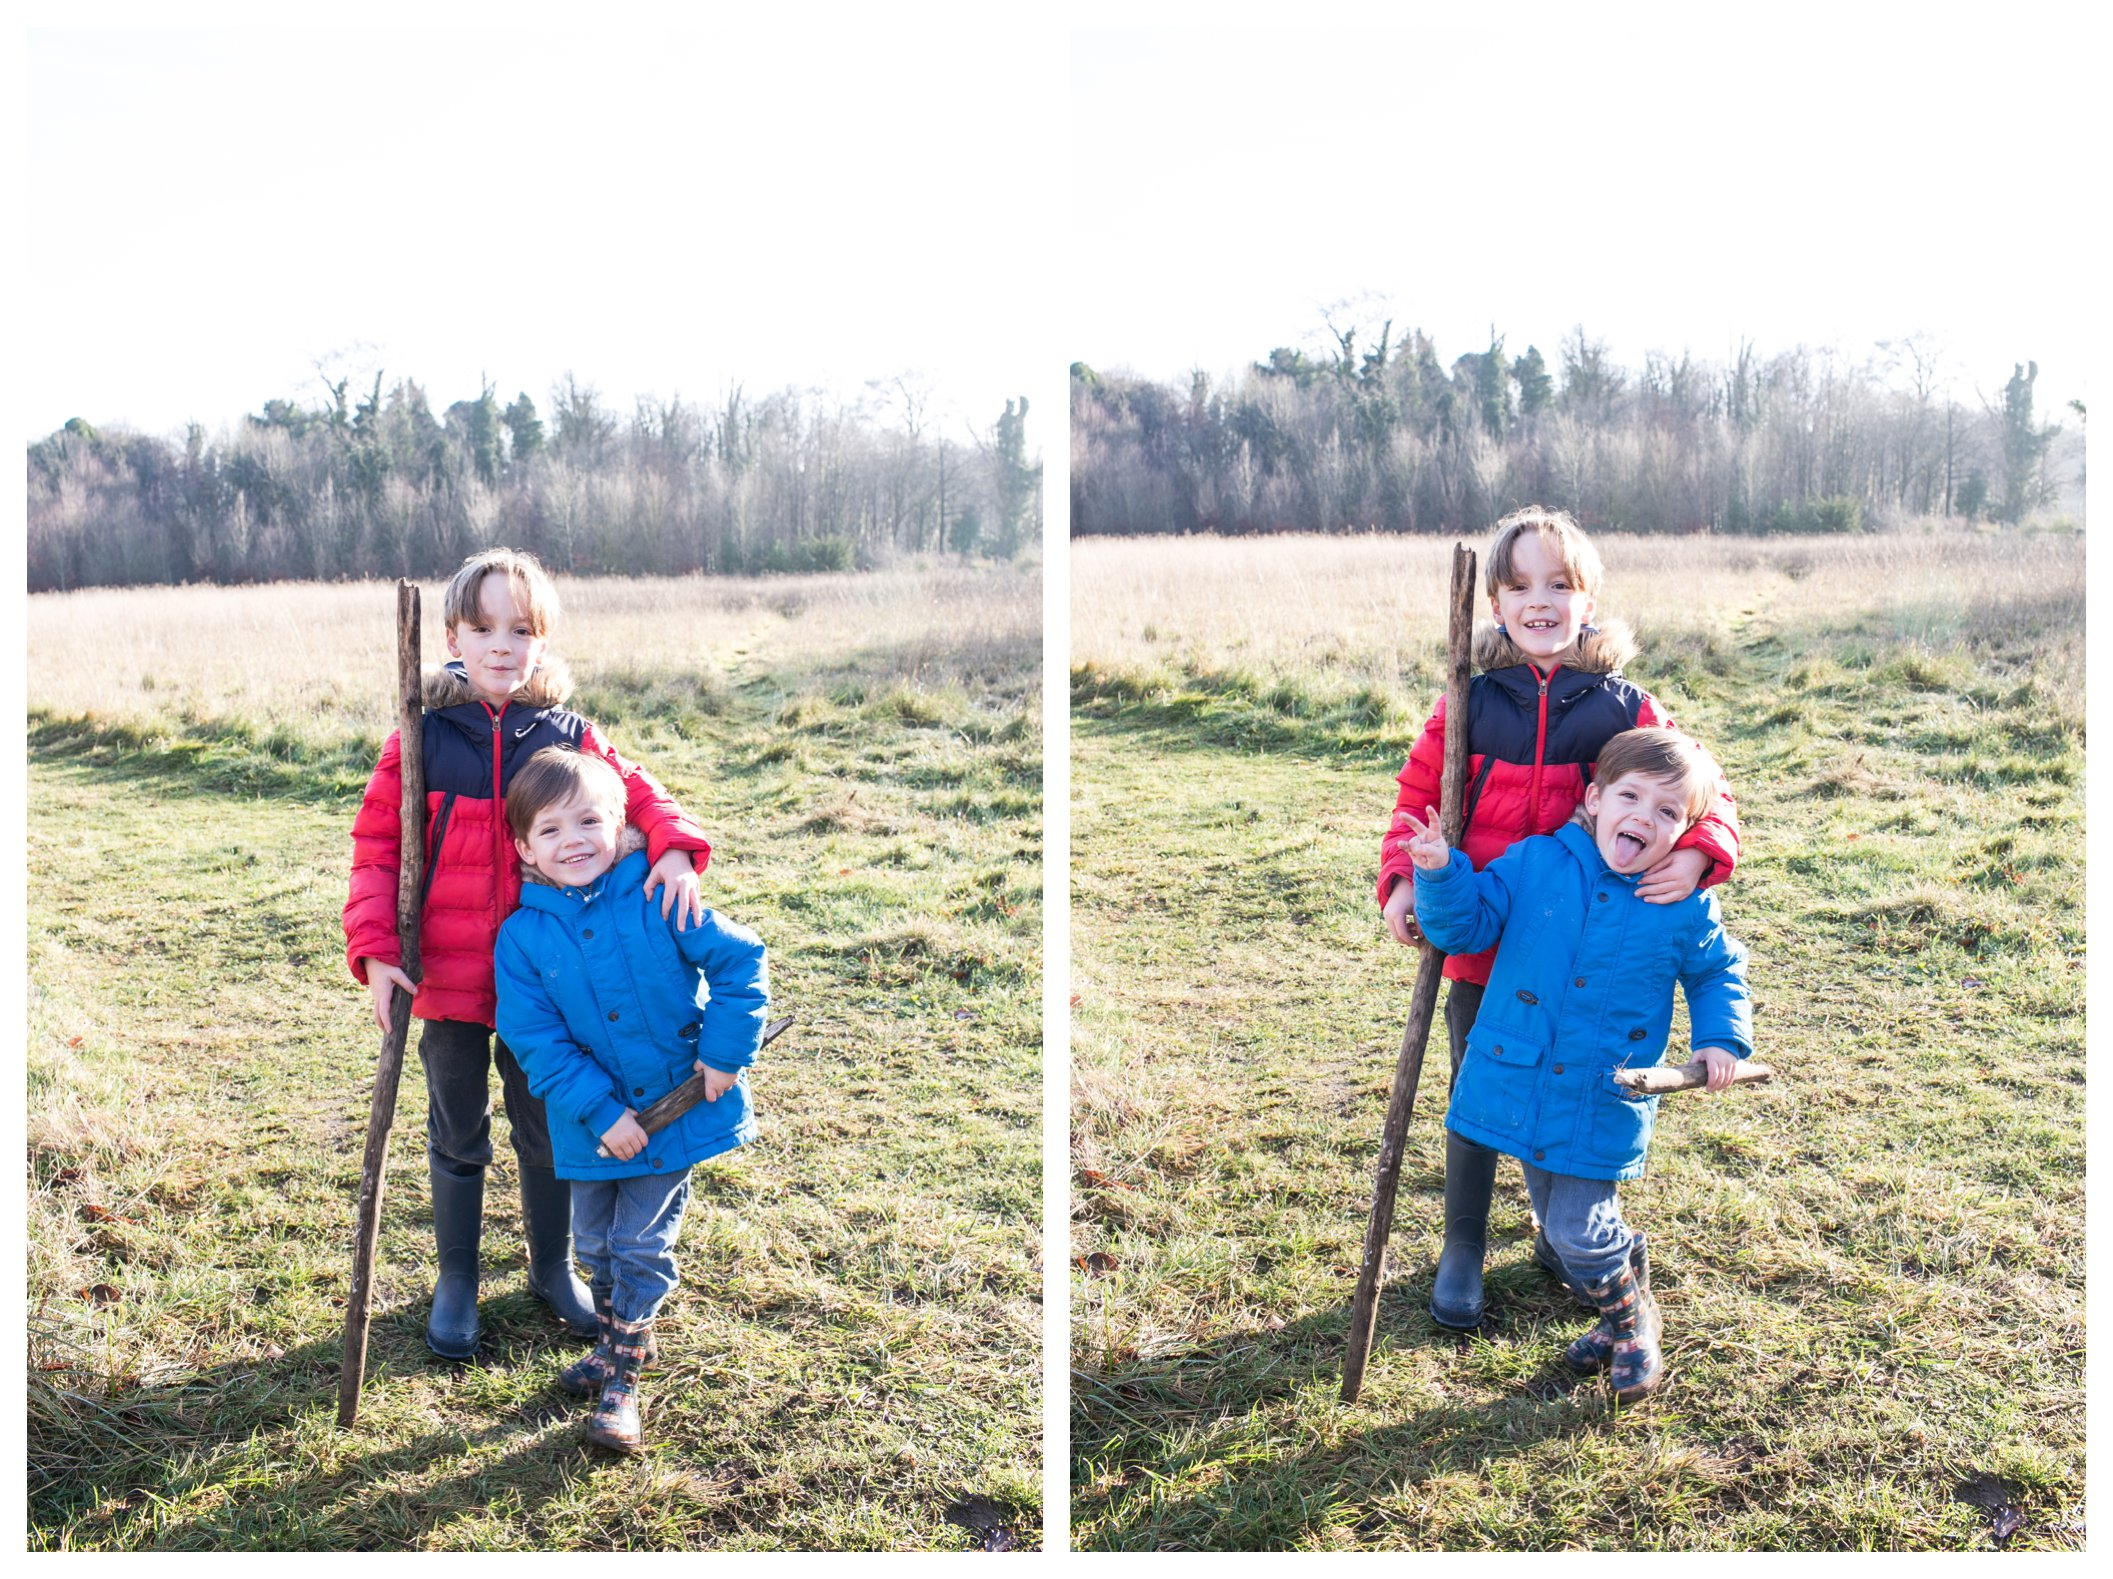 brothers standing together with large stick on country day out